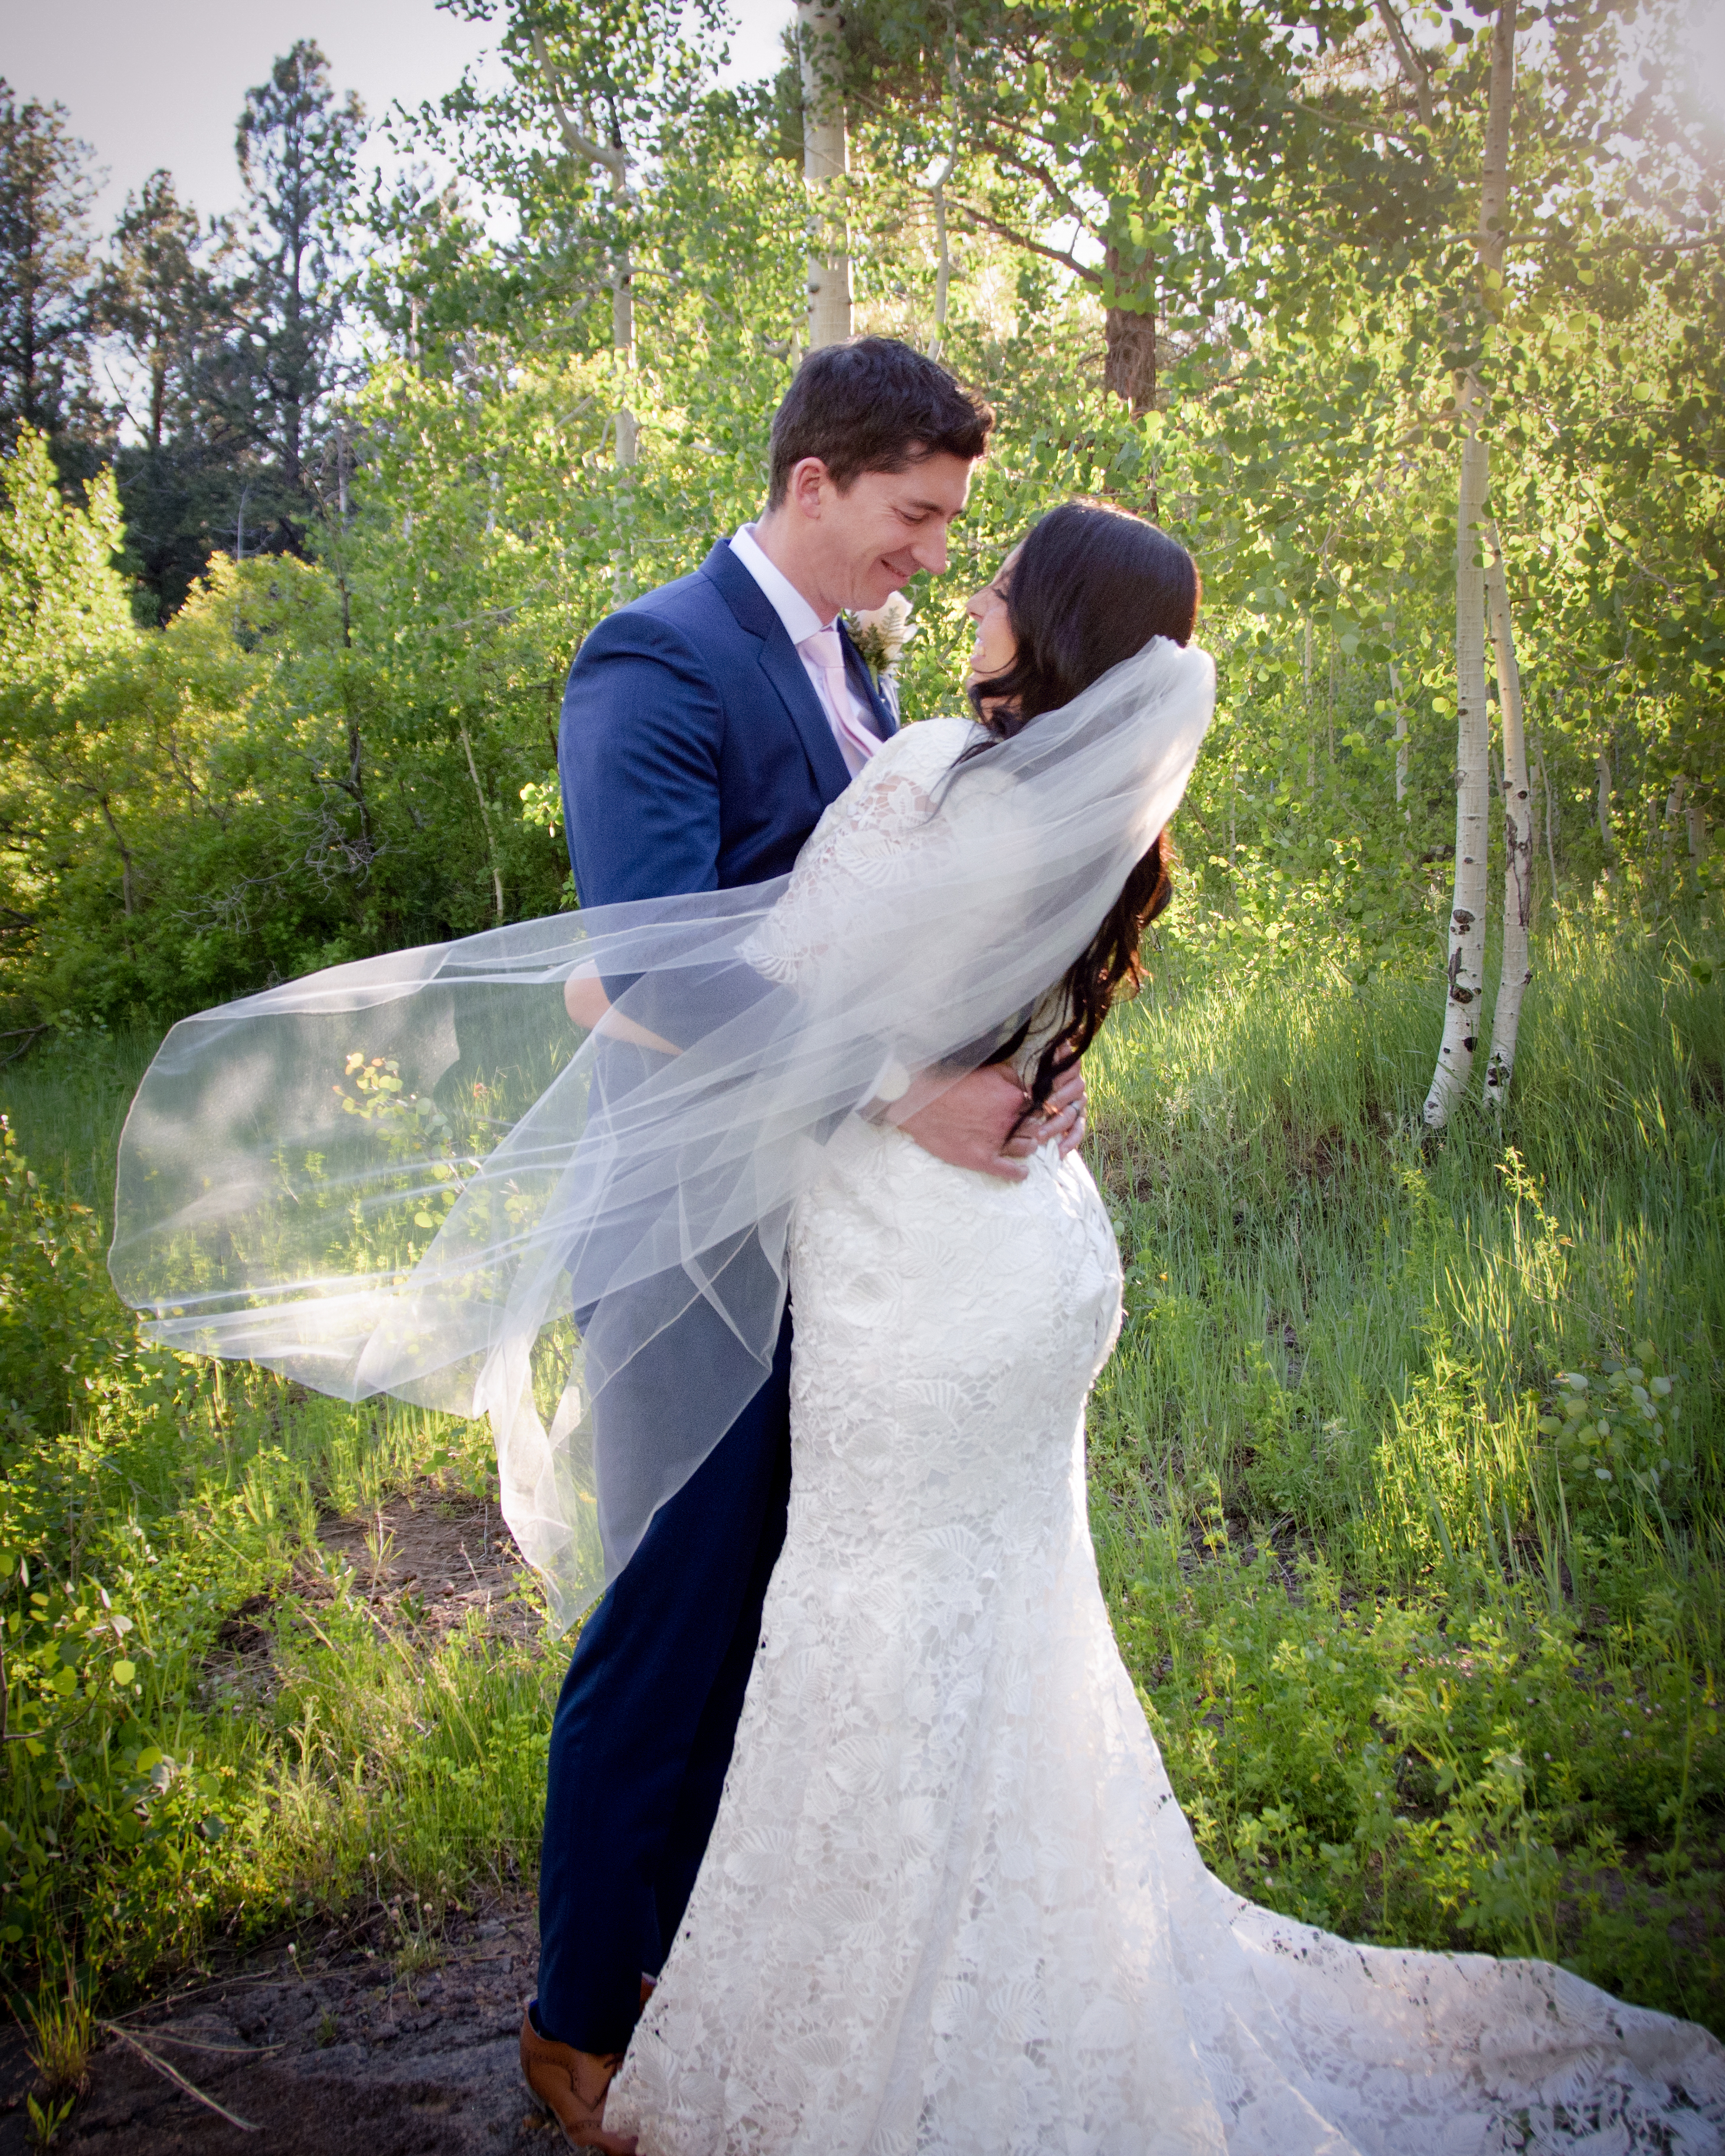 Wedding Gowns To Rent: Something Borrowed Bridal Rentals